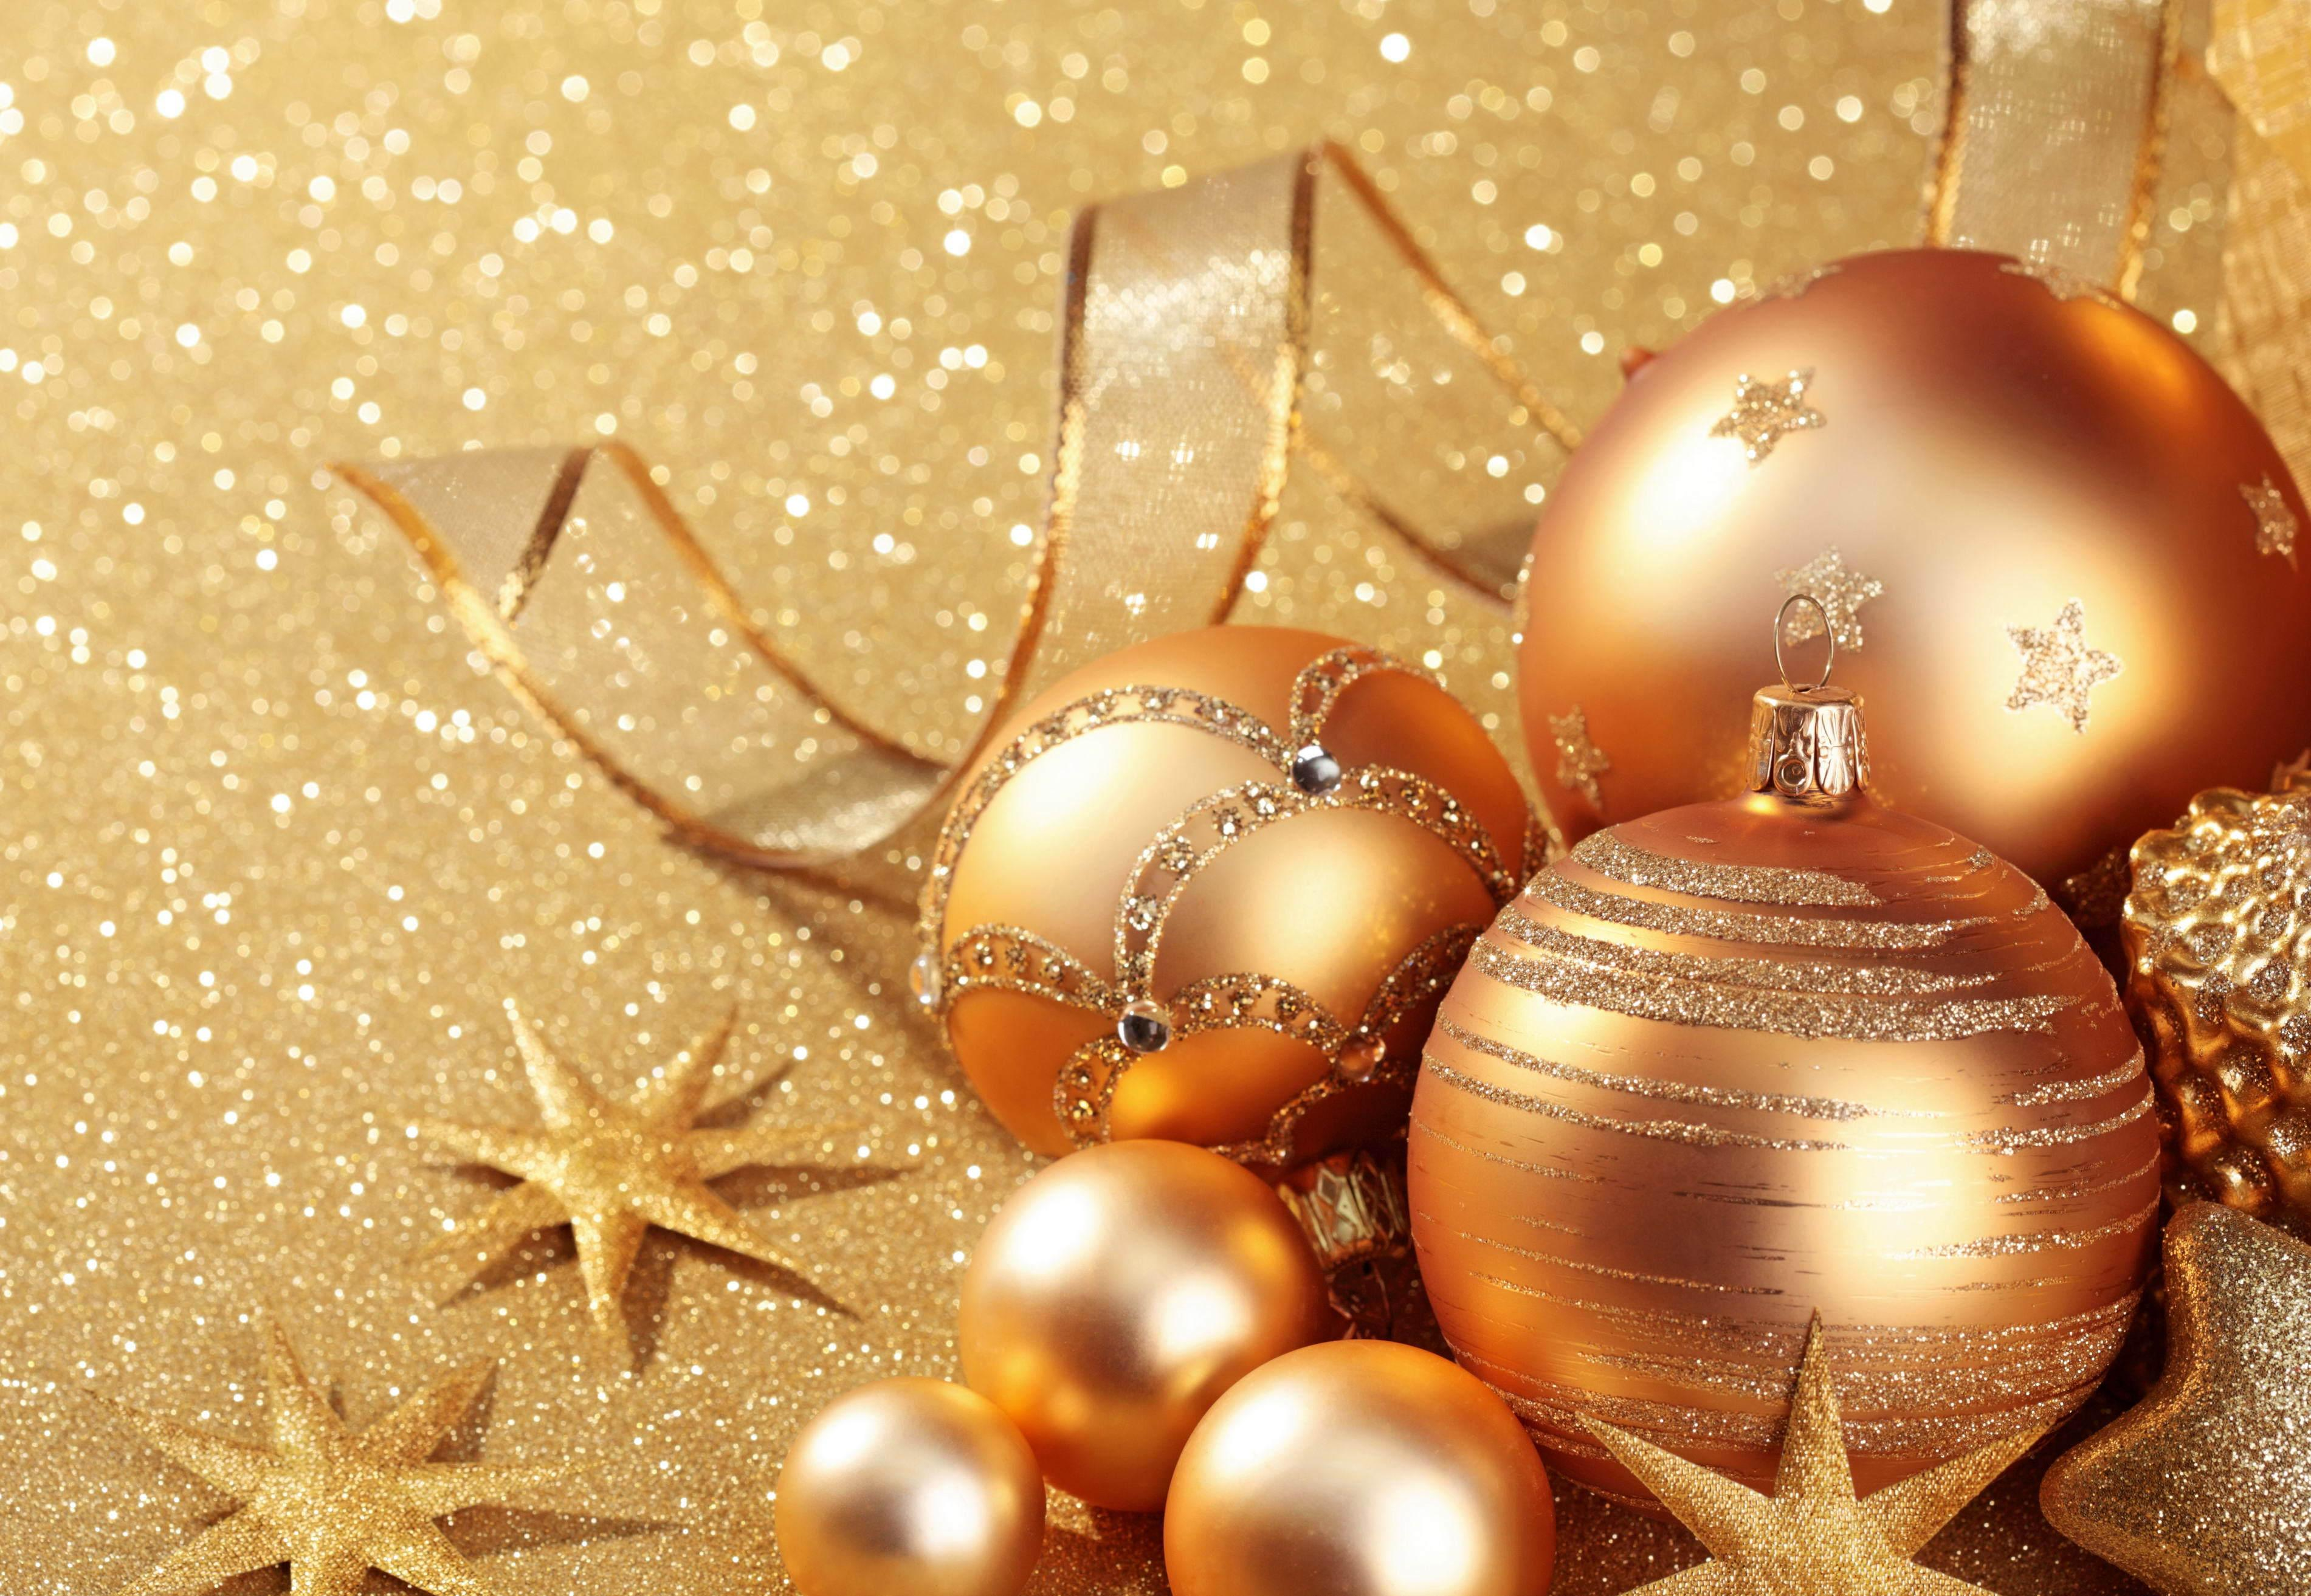 New_Year_wallpapers_original_Christmas_decorations_051032_.jpg